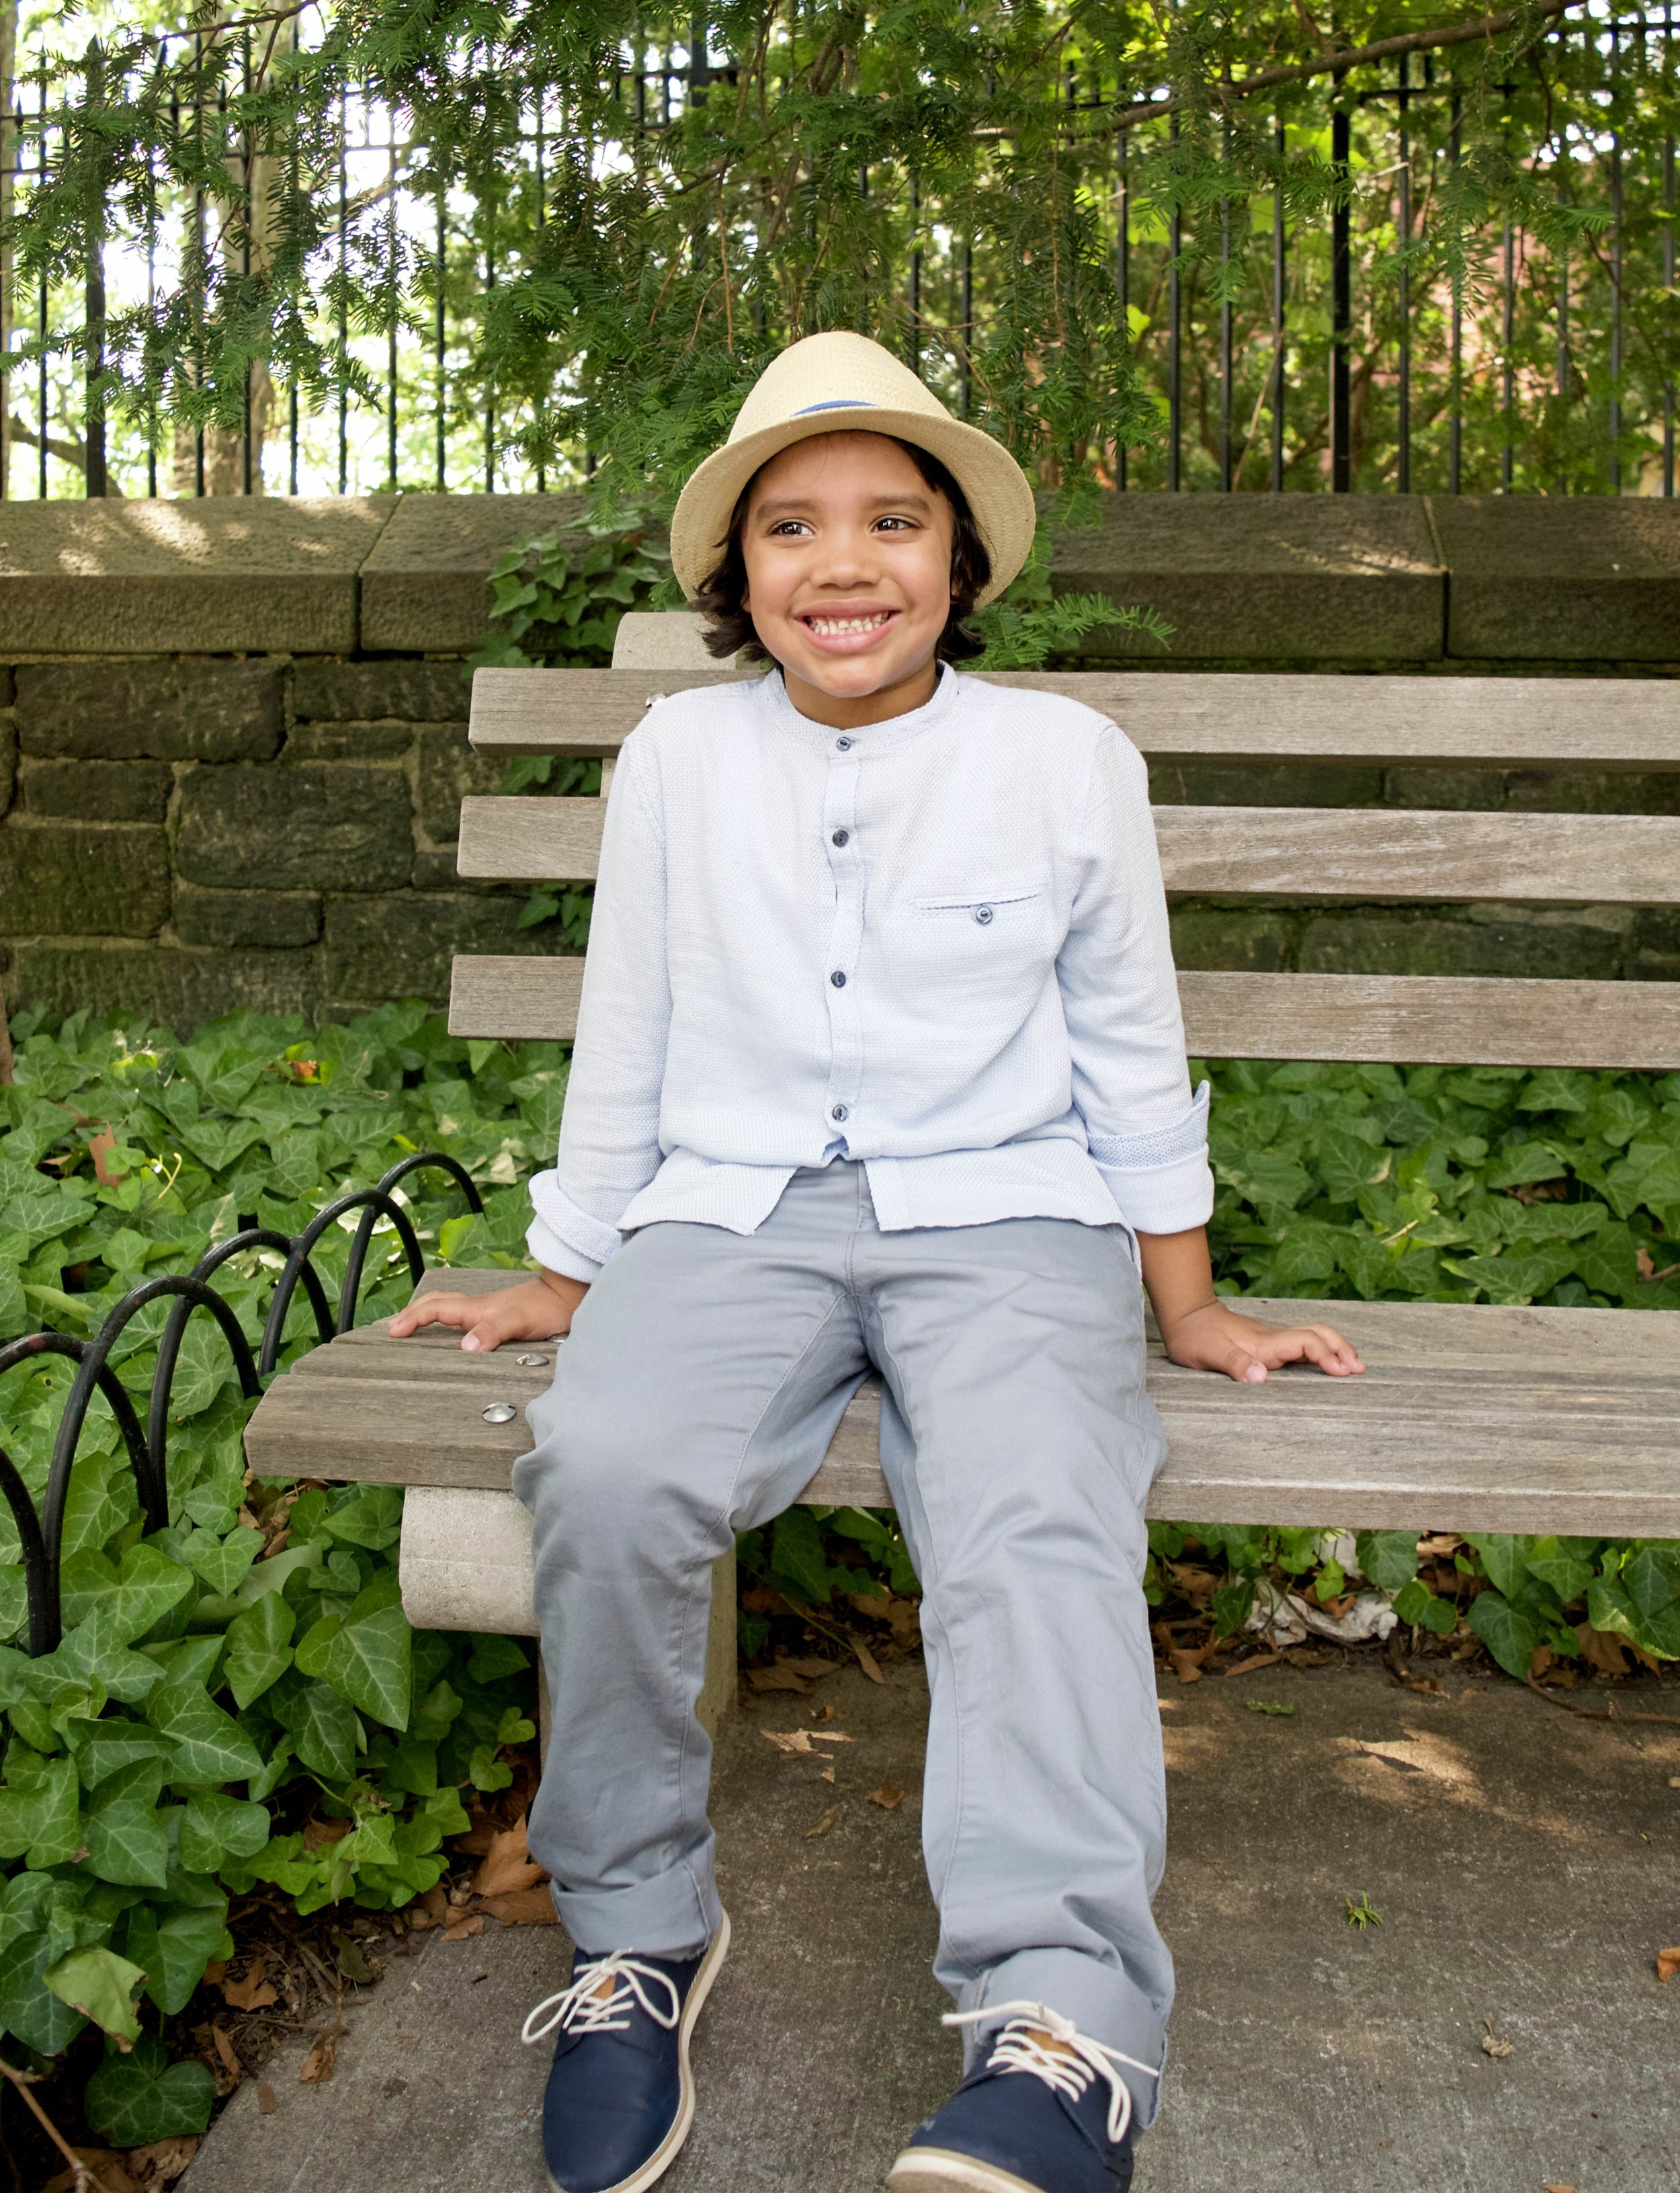 child portrait photography The cloisters  new york connecticut